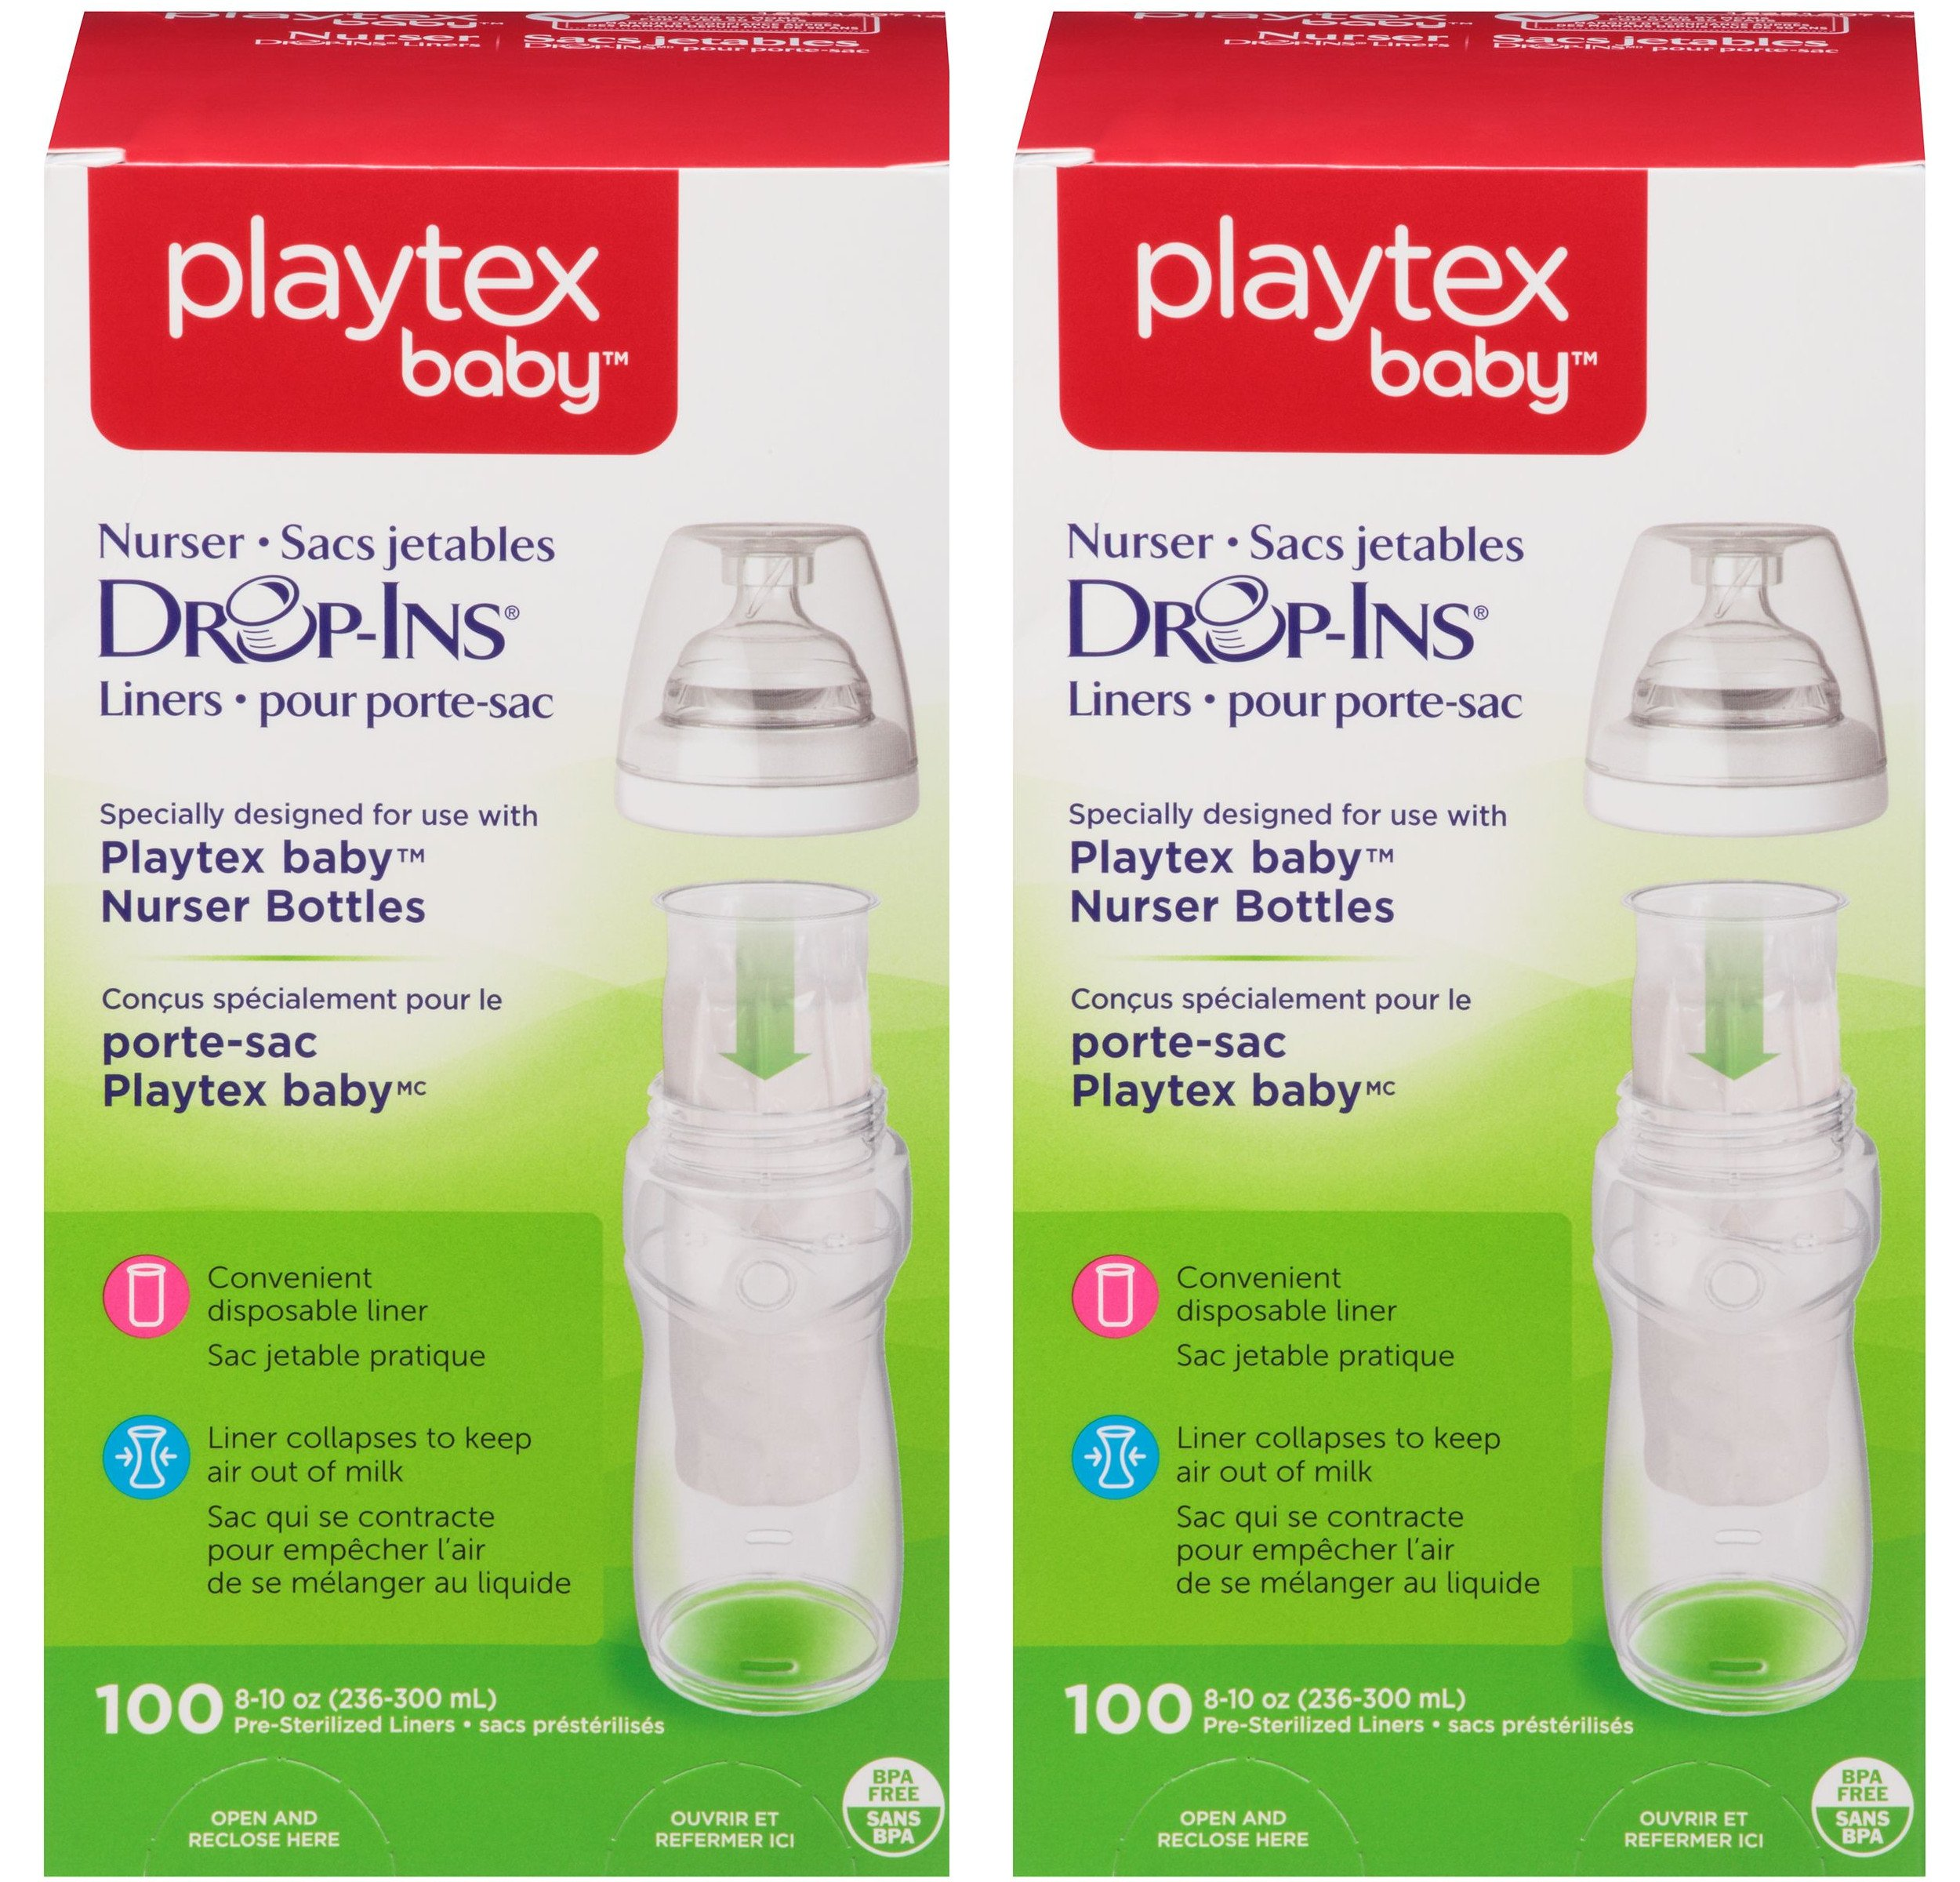 Playtex Baby Nurser Drop-Ins Baby Bottle Disposable Liners, Closer to Breastfeeding, 8 Ounce